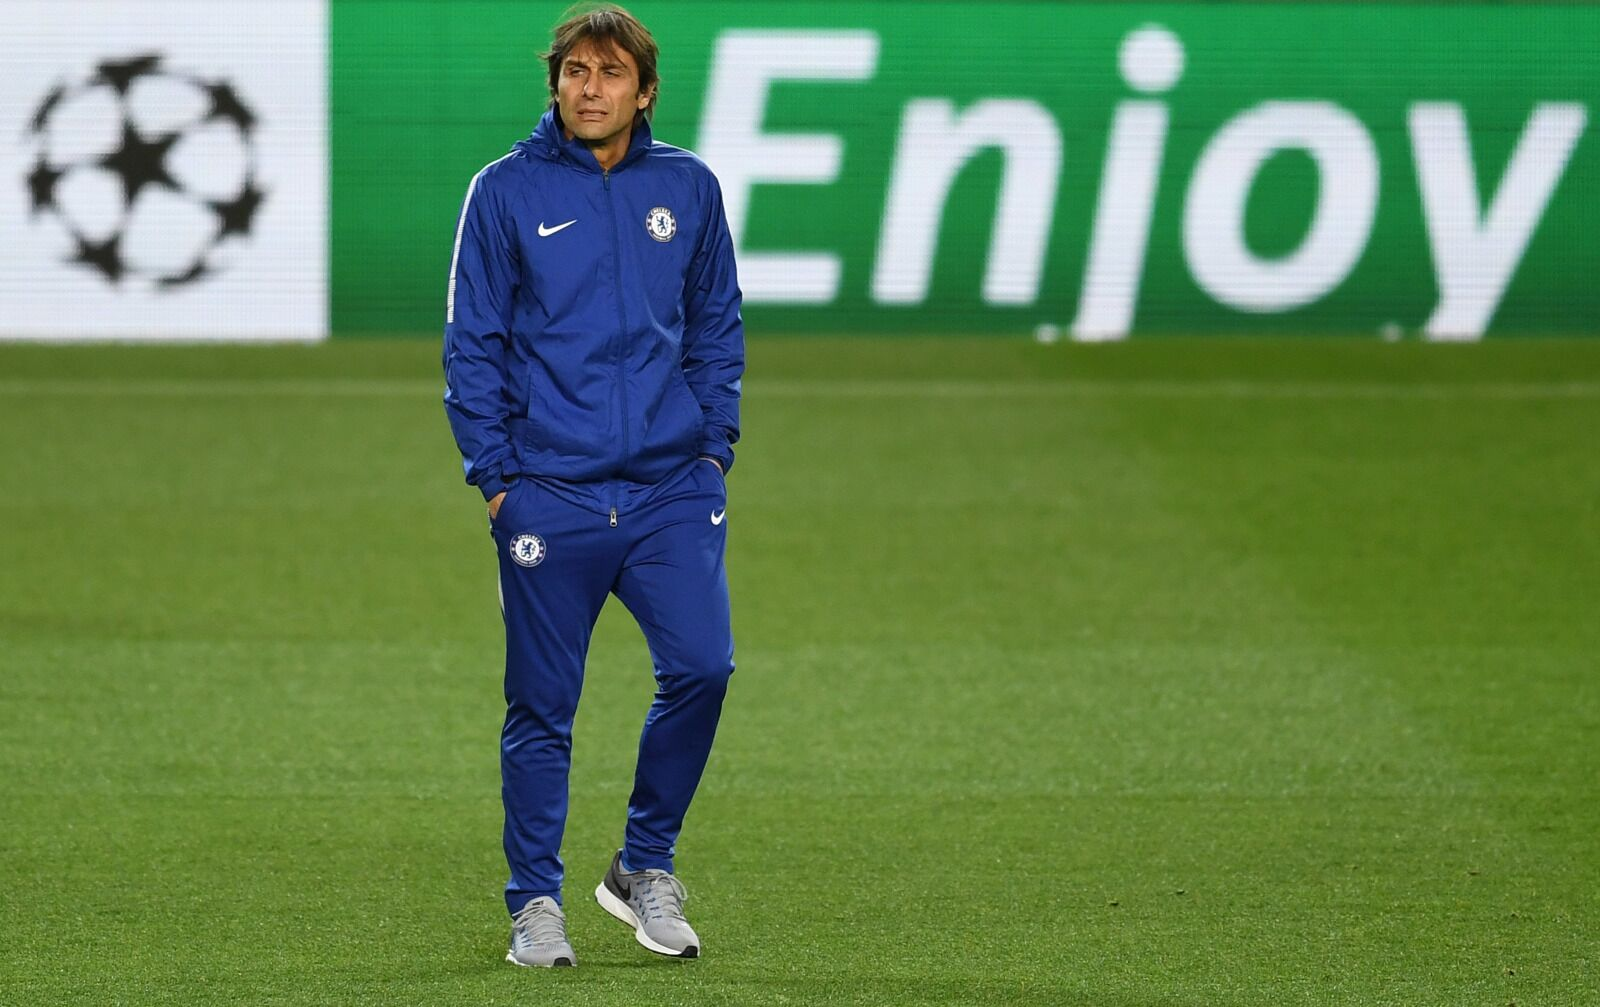 931506886-chelsea-training-and-press-conference.jpg